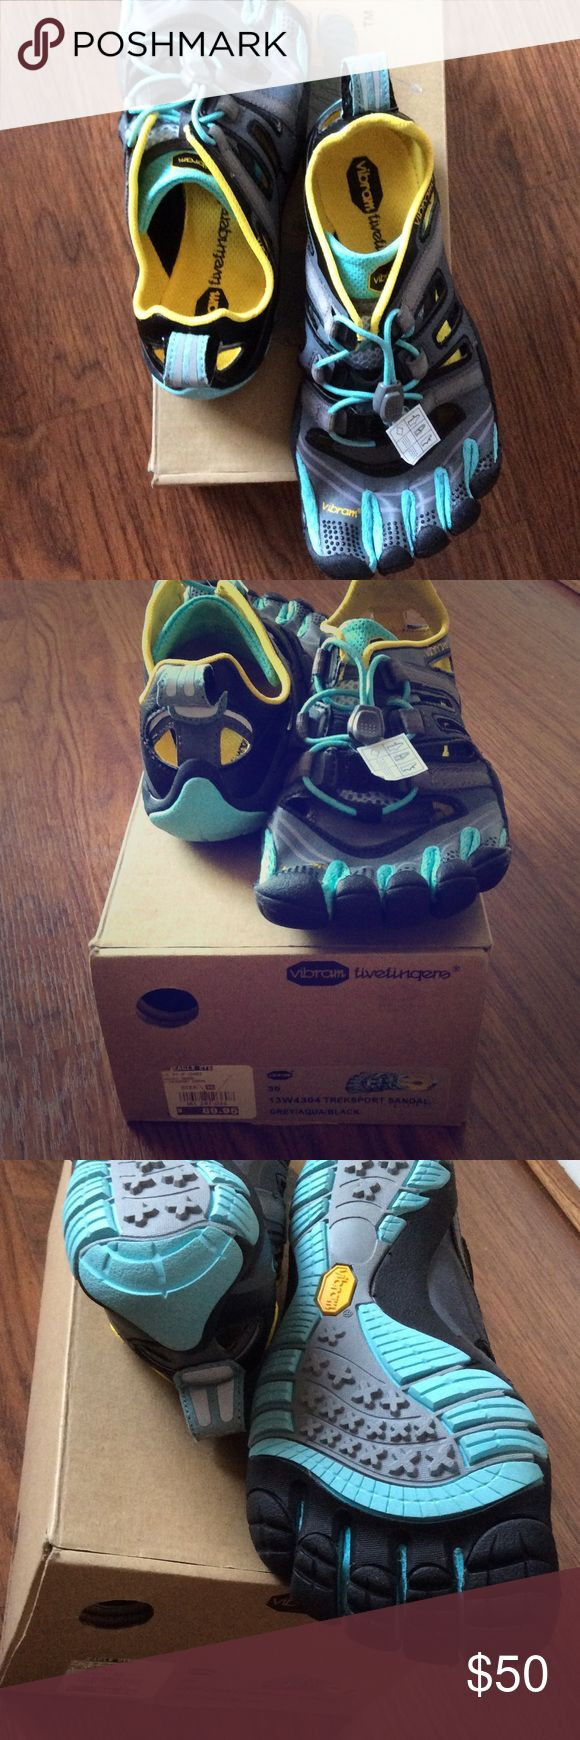 Vibram five fingers treksport Outdoor shoes with added grip with five fingers technology. Never worn, retail for $89.95 as shown on box. New in box. Grey/aqua/black. Smoke free, pet free home. Vibram Shoes Athletic Shoes